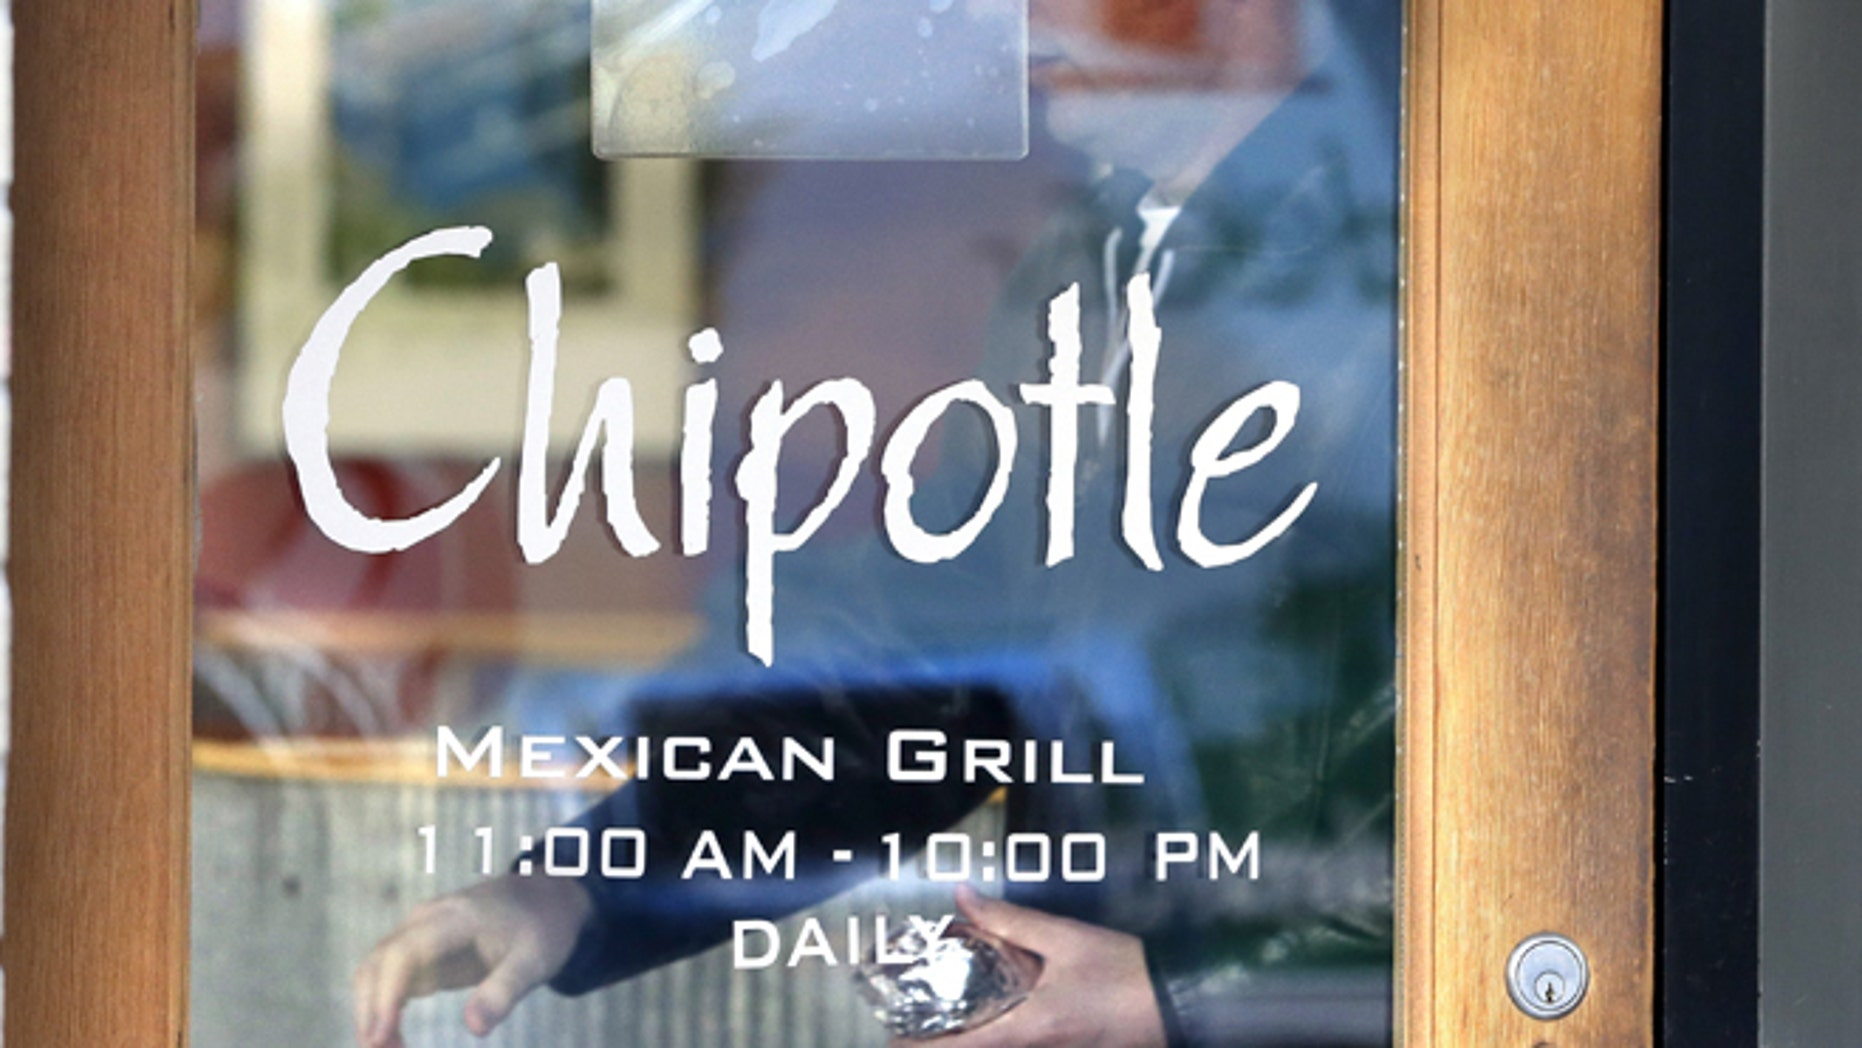 Chipotle offers to rehire manager after online backlash caused her firing